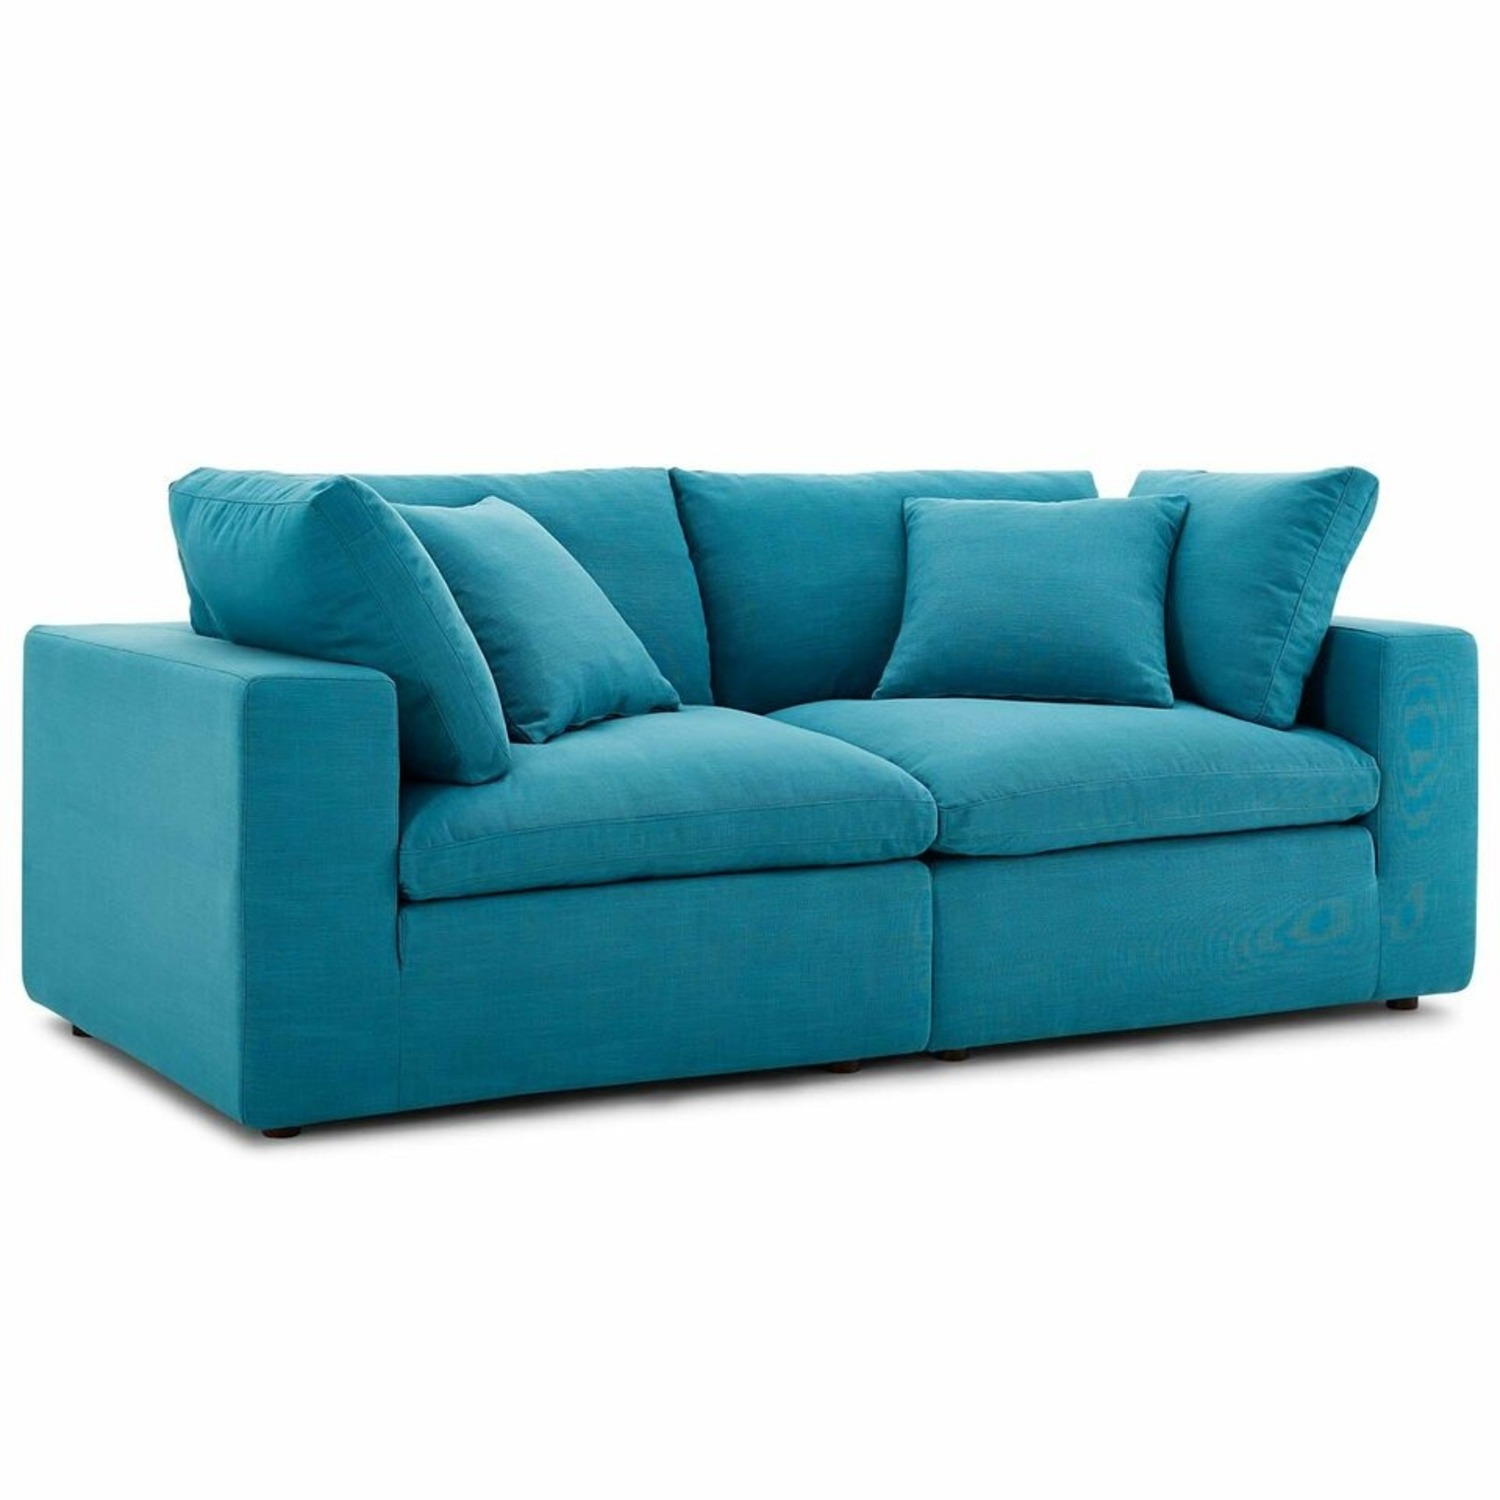 2-Piece Sectional Sofa In Teal Linen Fabric - image-0